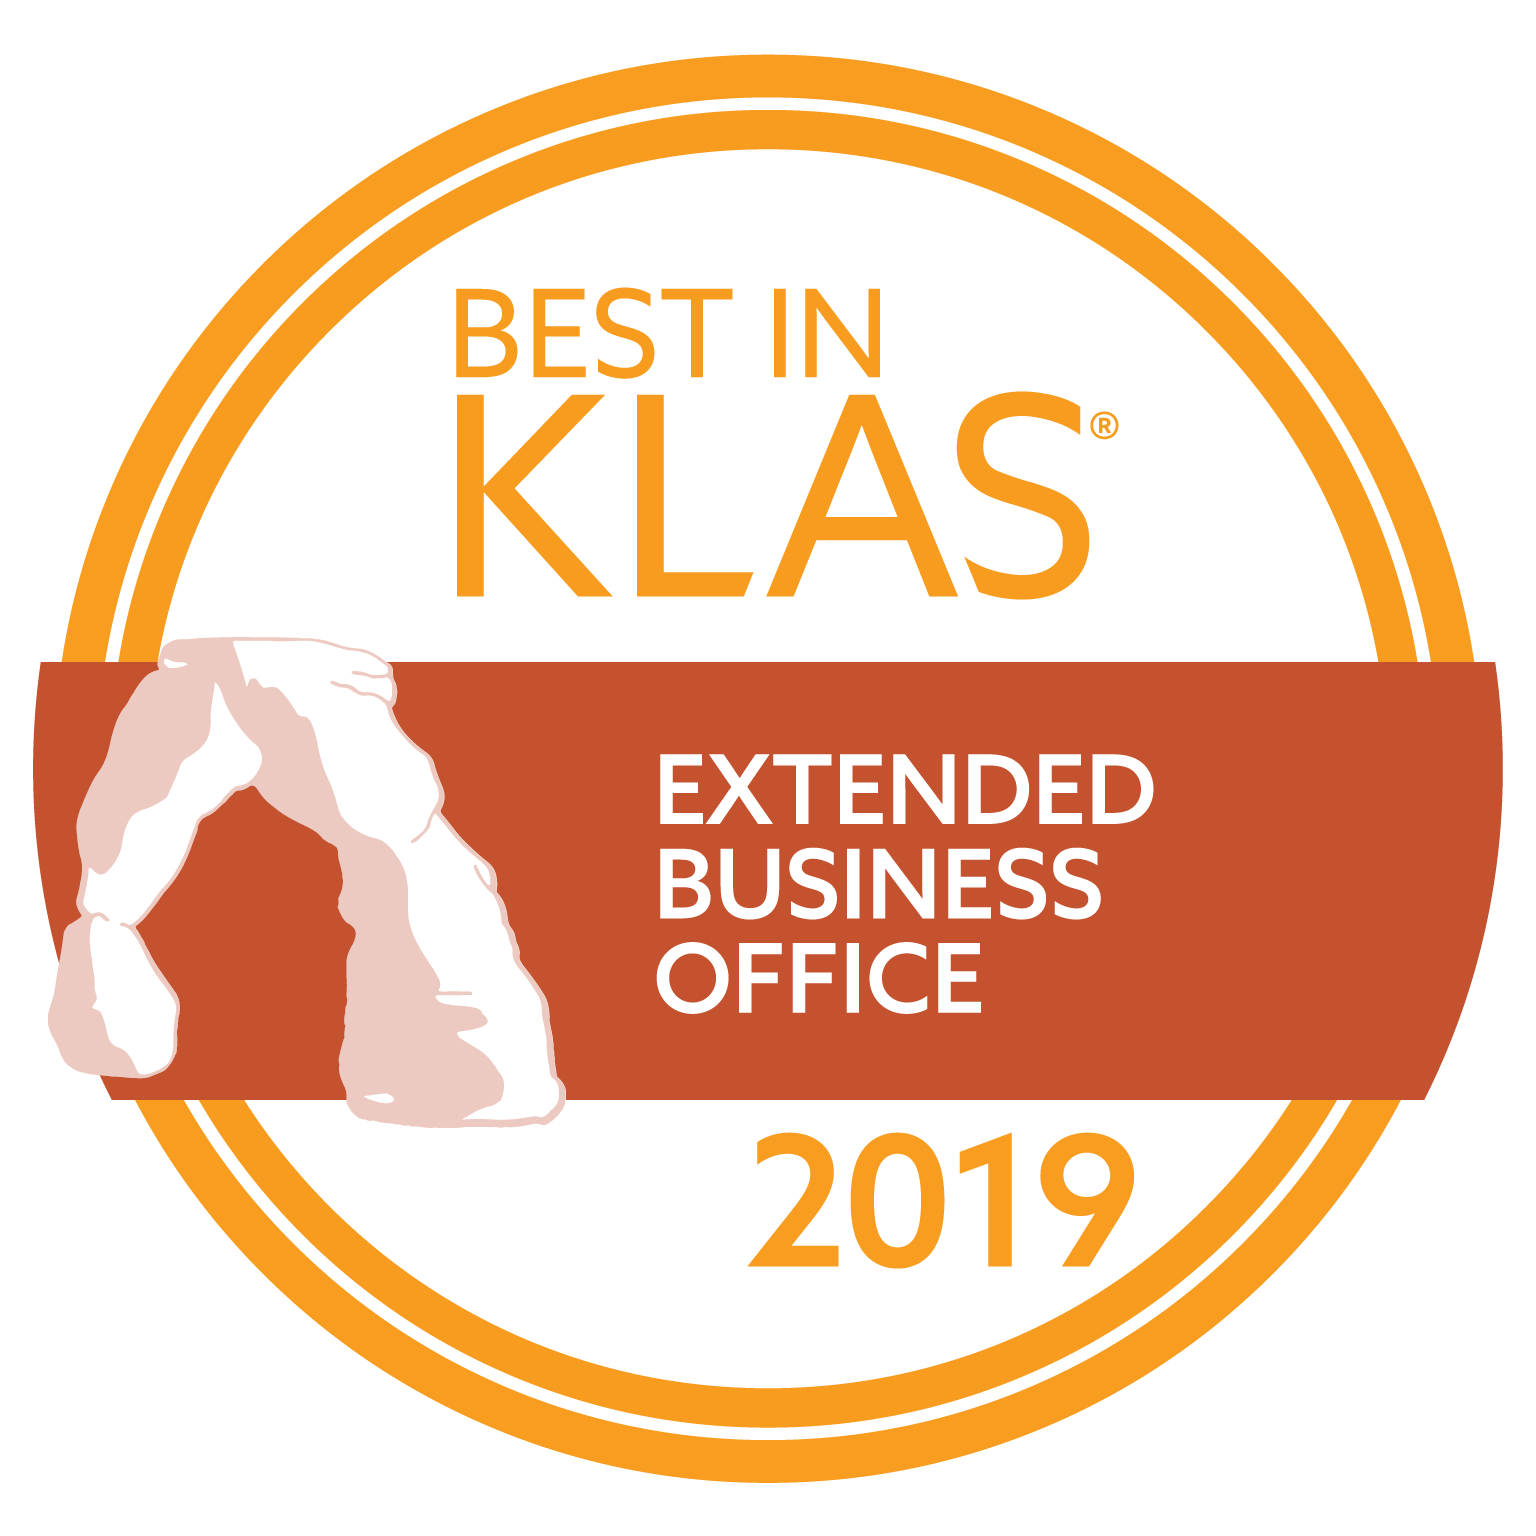 2019 Best in Klas Extended Business Office